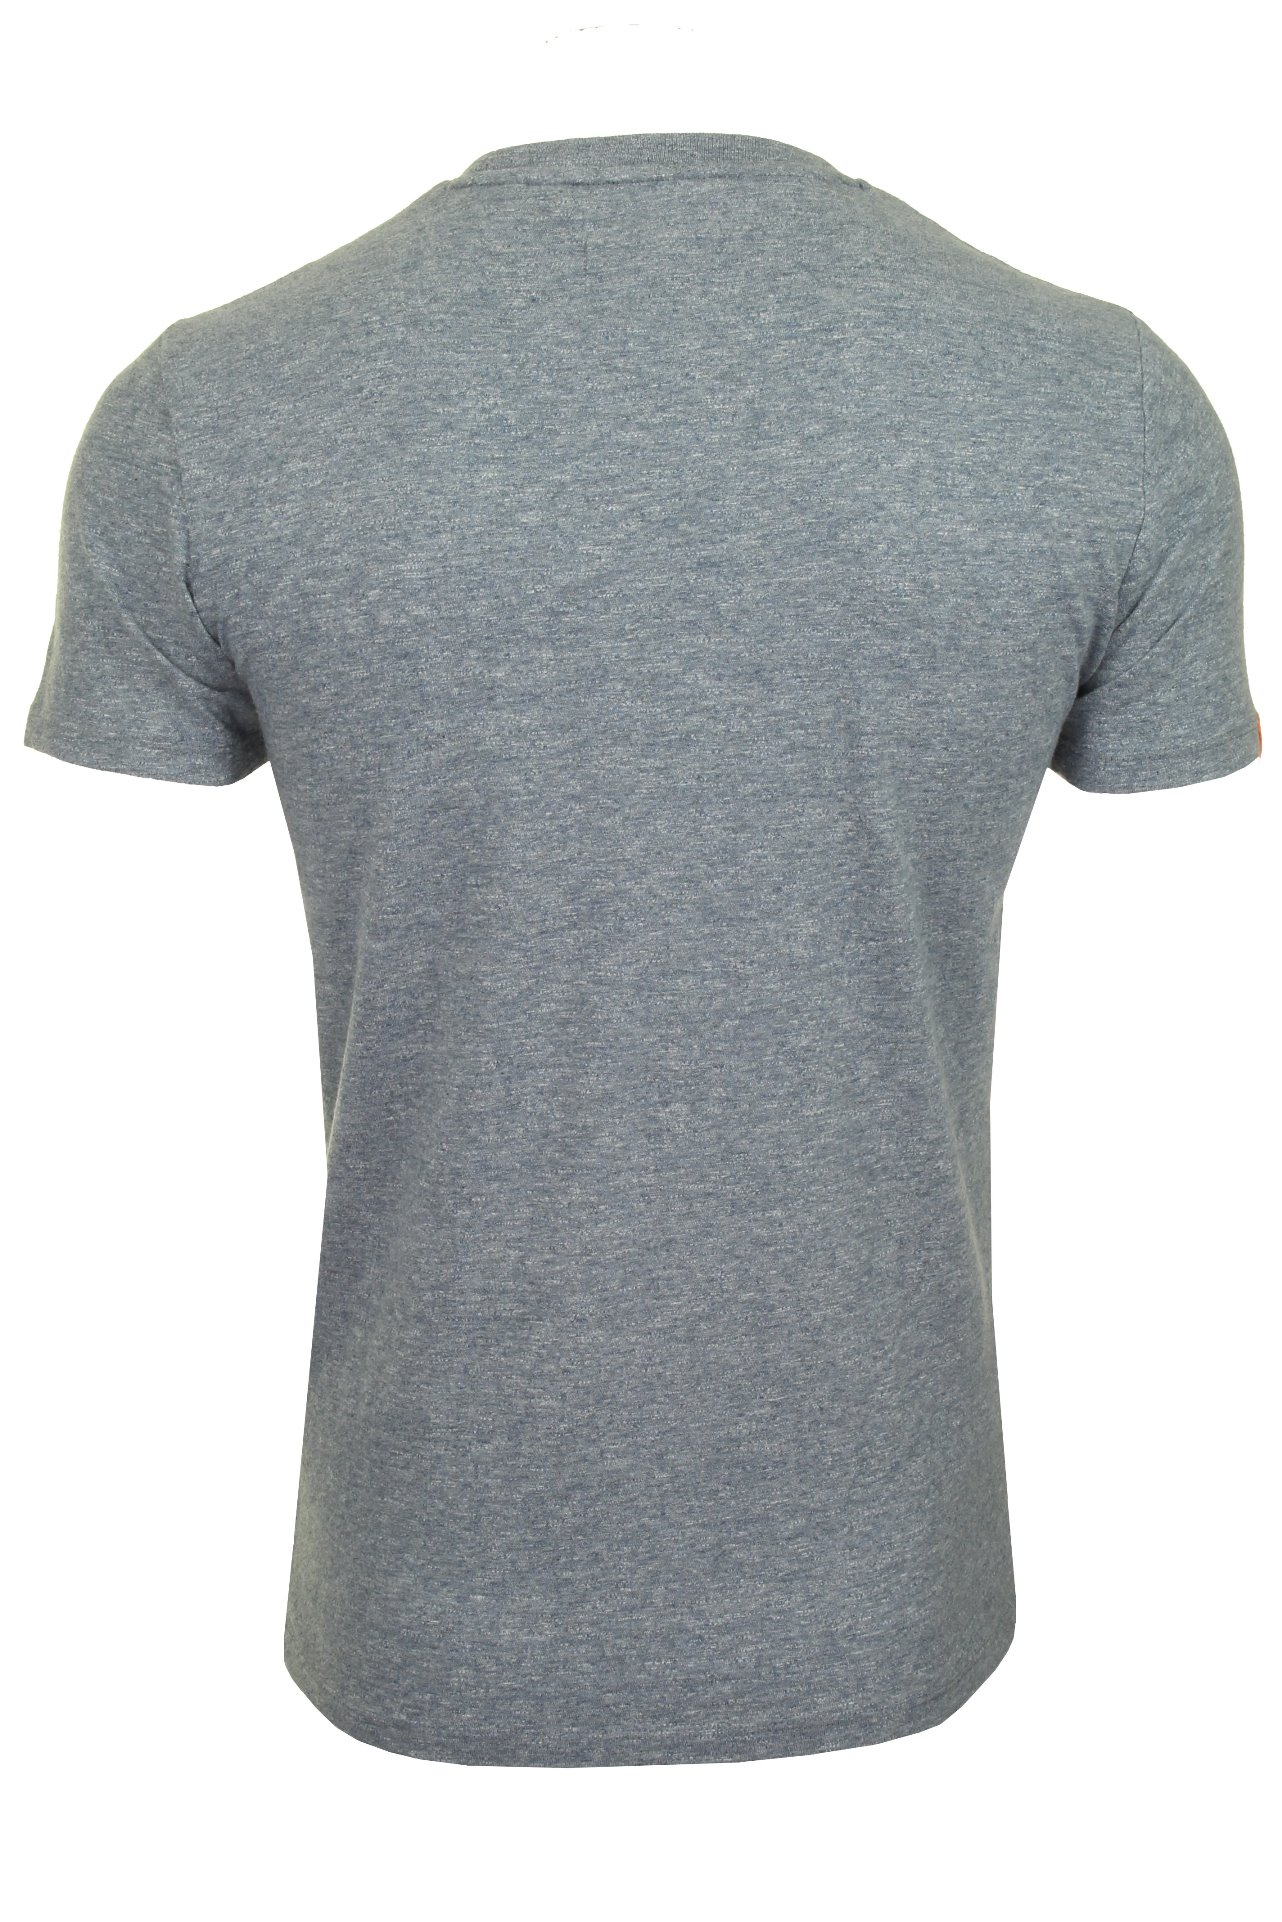 Superdry-Mens-T-Shirt-039-OL-Vintage-Embroidery-Tee-039-Short-Sleeved thumbnail 8